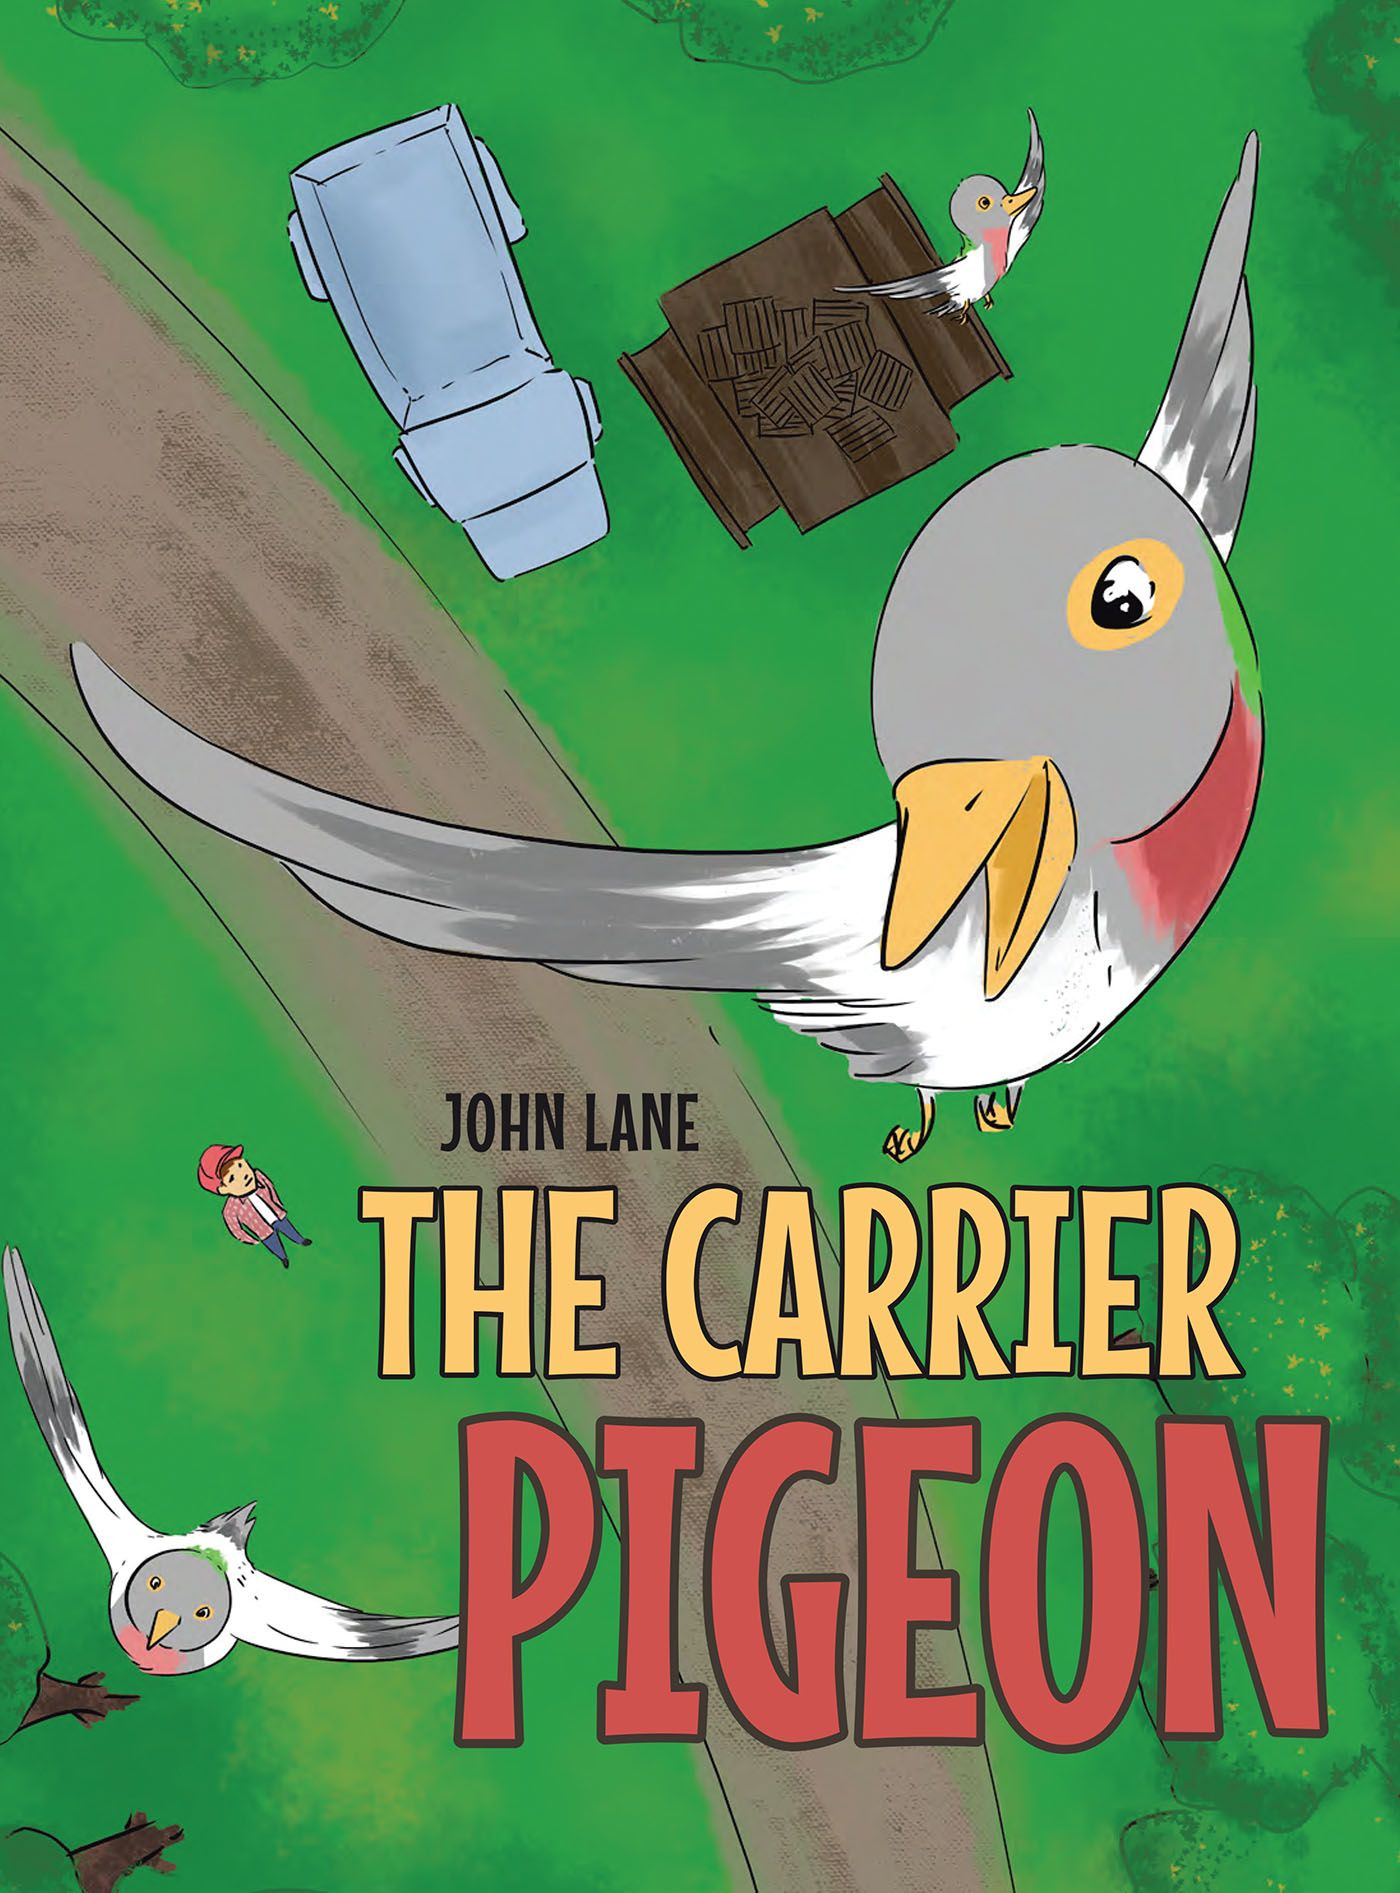 """Books   Page Publishing John Lane's new book """"The Carrier Pigeon"""" is a compelling story on a homing pigeon's positive impact in the lives of barnyard animals and a redheaded boy."""